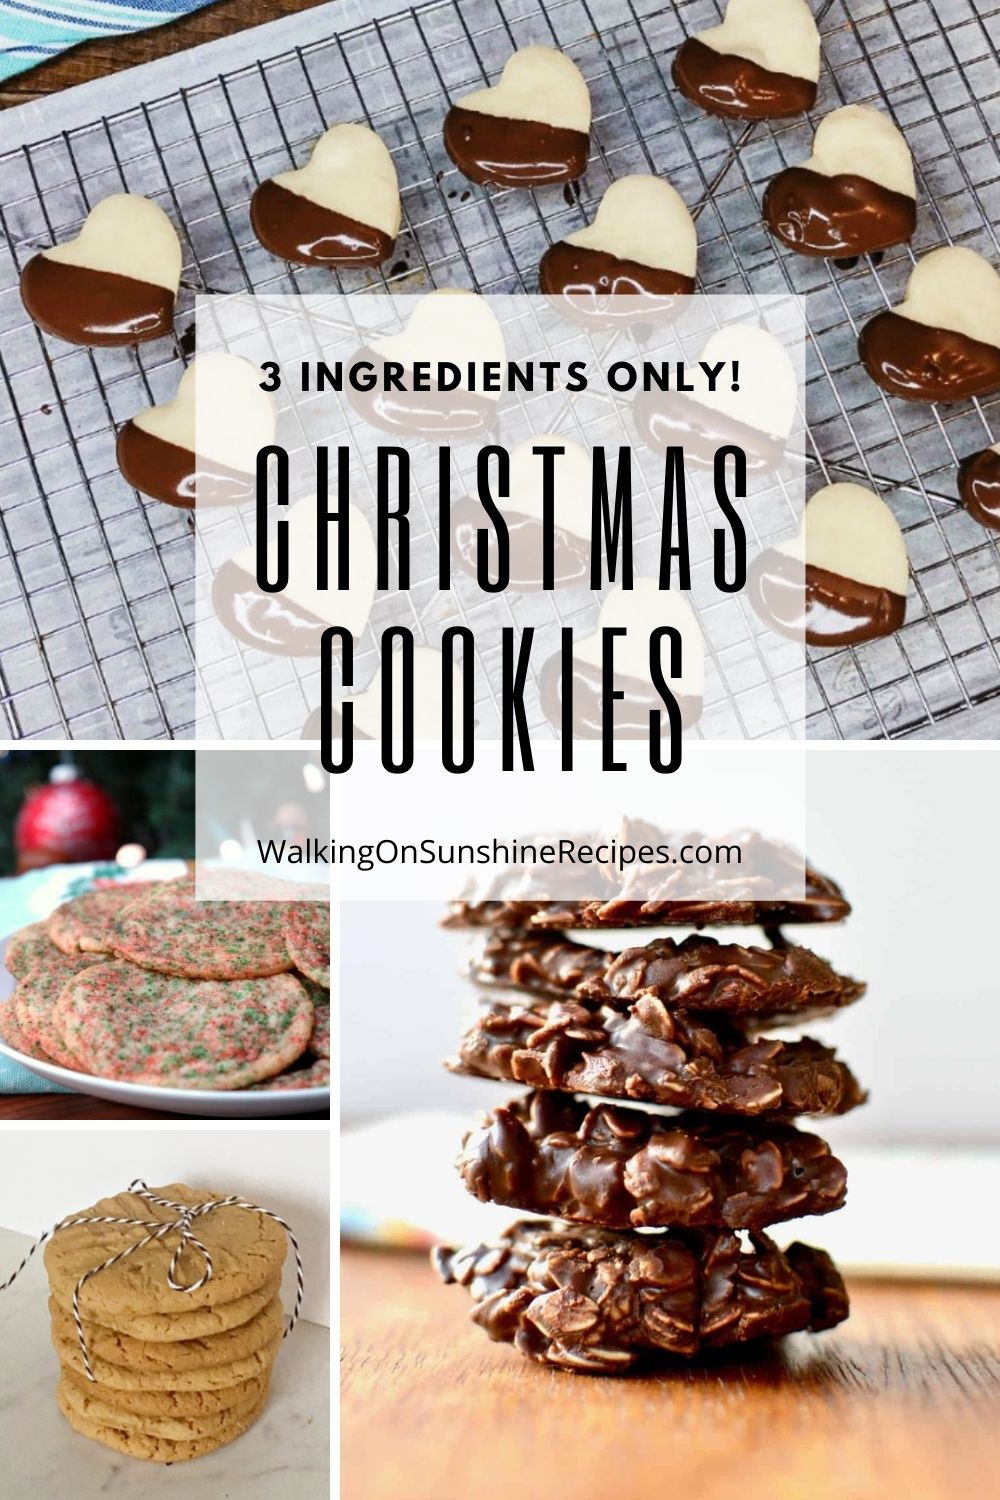 Heart shaped cookies, Funfetti cookies, peanut butter cookies and chocolate oatmeal cookies all have 3 ingredients.